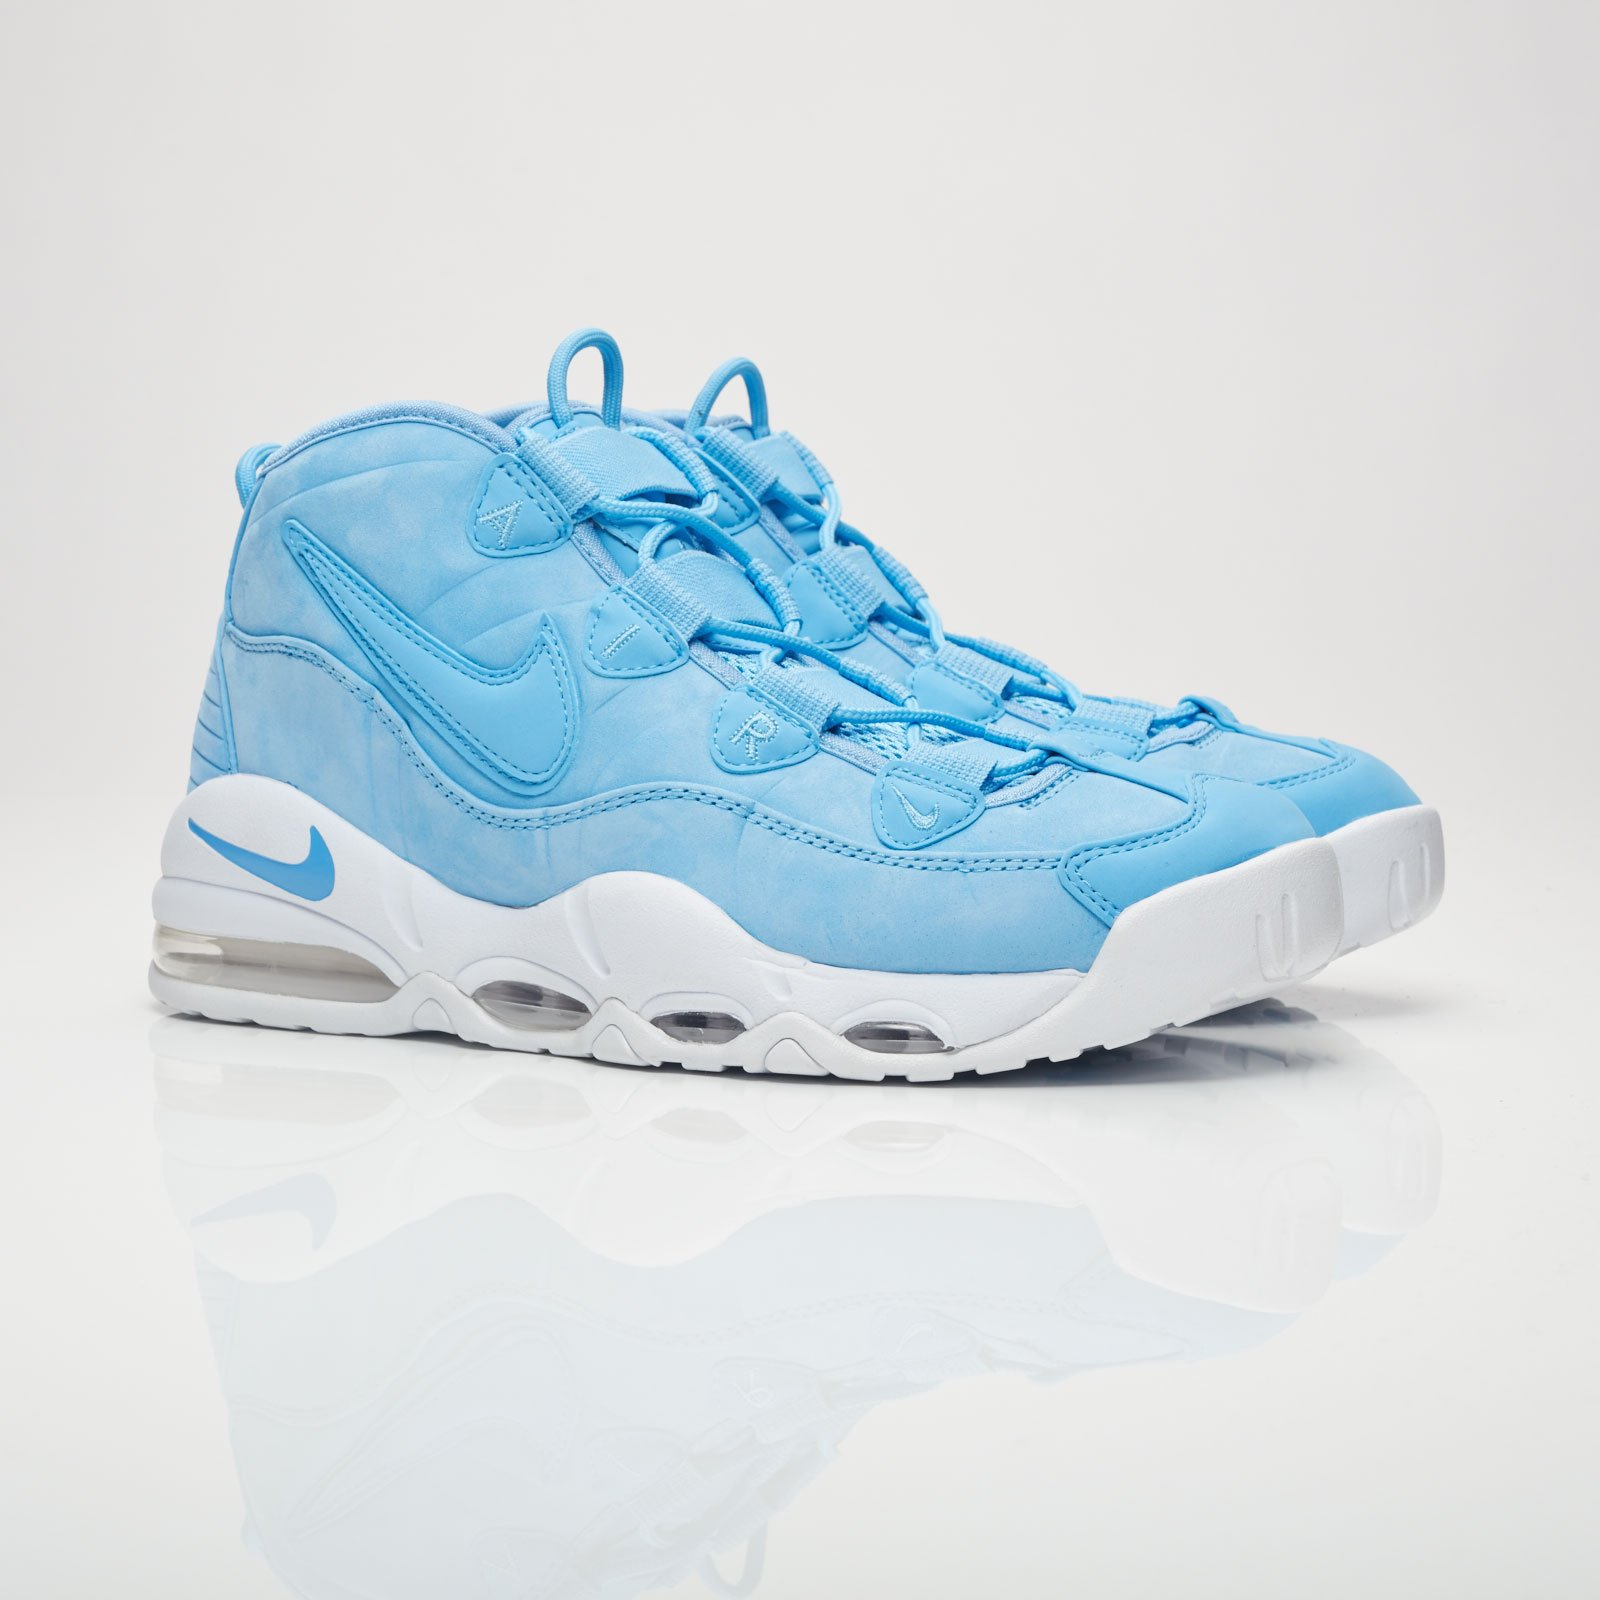 nike sportswear air max uptempo 95 as qs